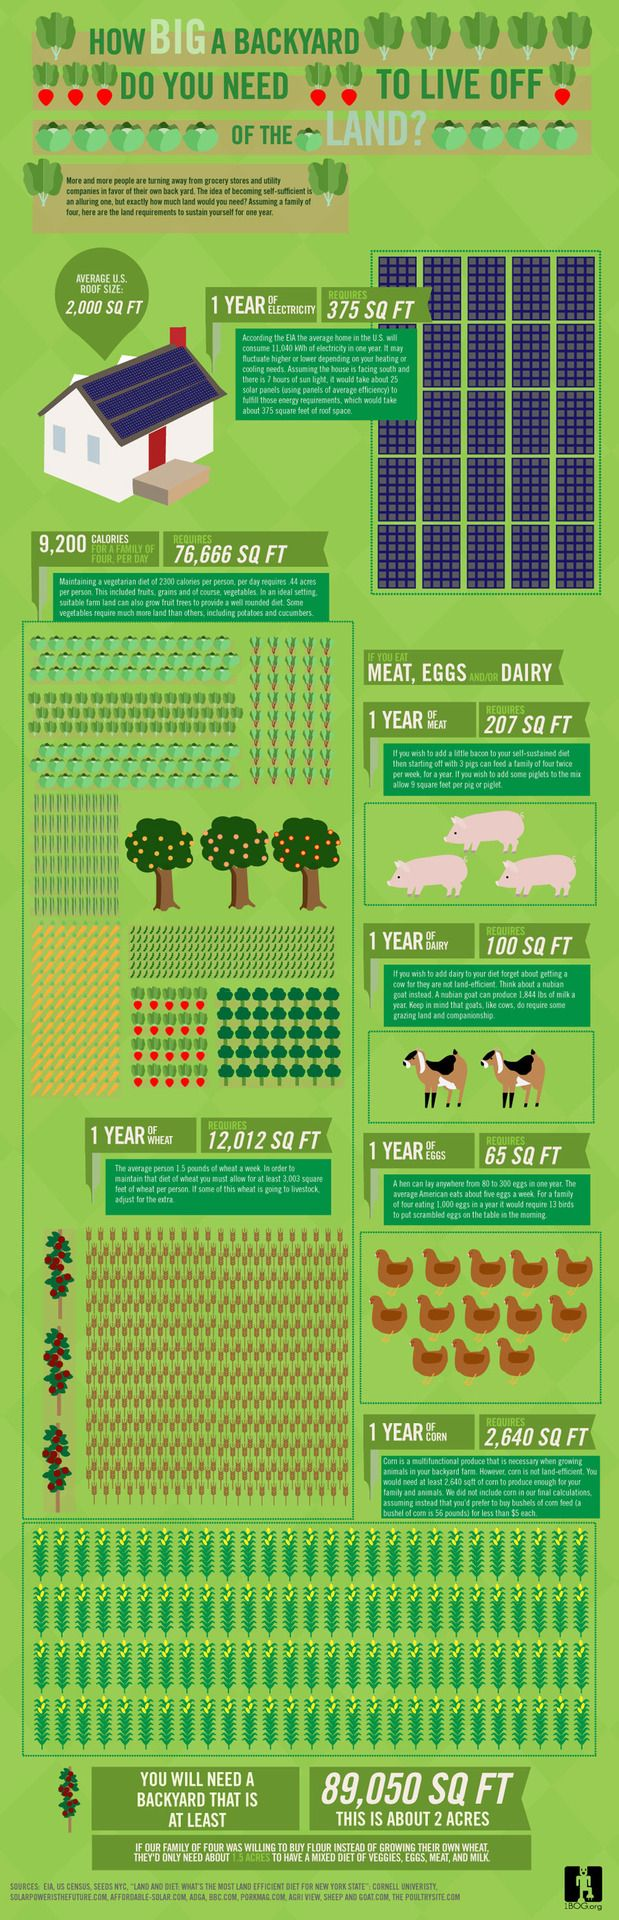 mothernaturenetwork:  How big a backyard would you need to live off the land? Graphic illustrates how much backyard square footage would be needed to feed a family of 4 a well-rounded diet of meat, dairy, eggs, wheat, fruits and veggies for a year. Not surprisingly, it's a lot.  This is a great infographic you need only 1.5 acres. So cool.